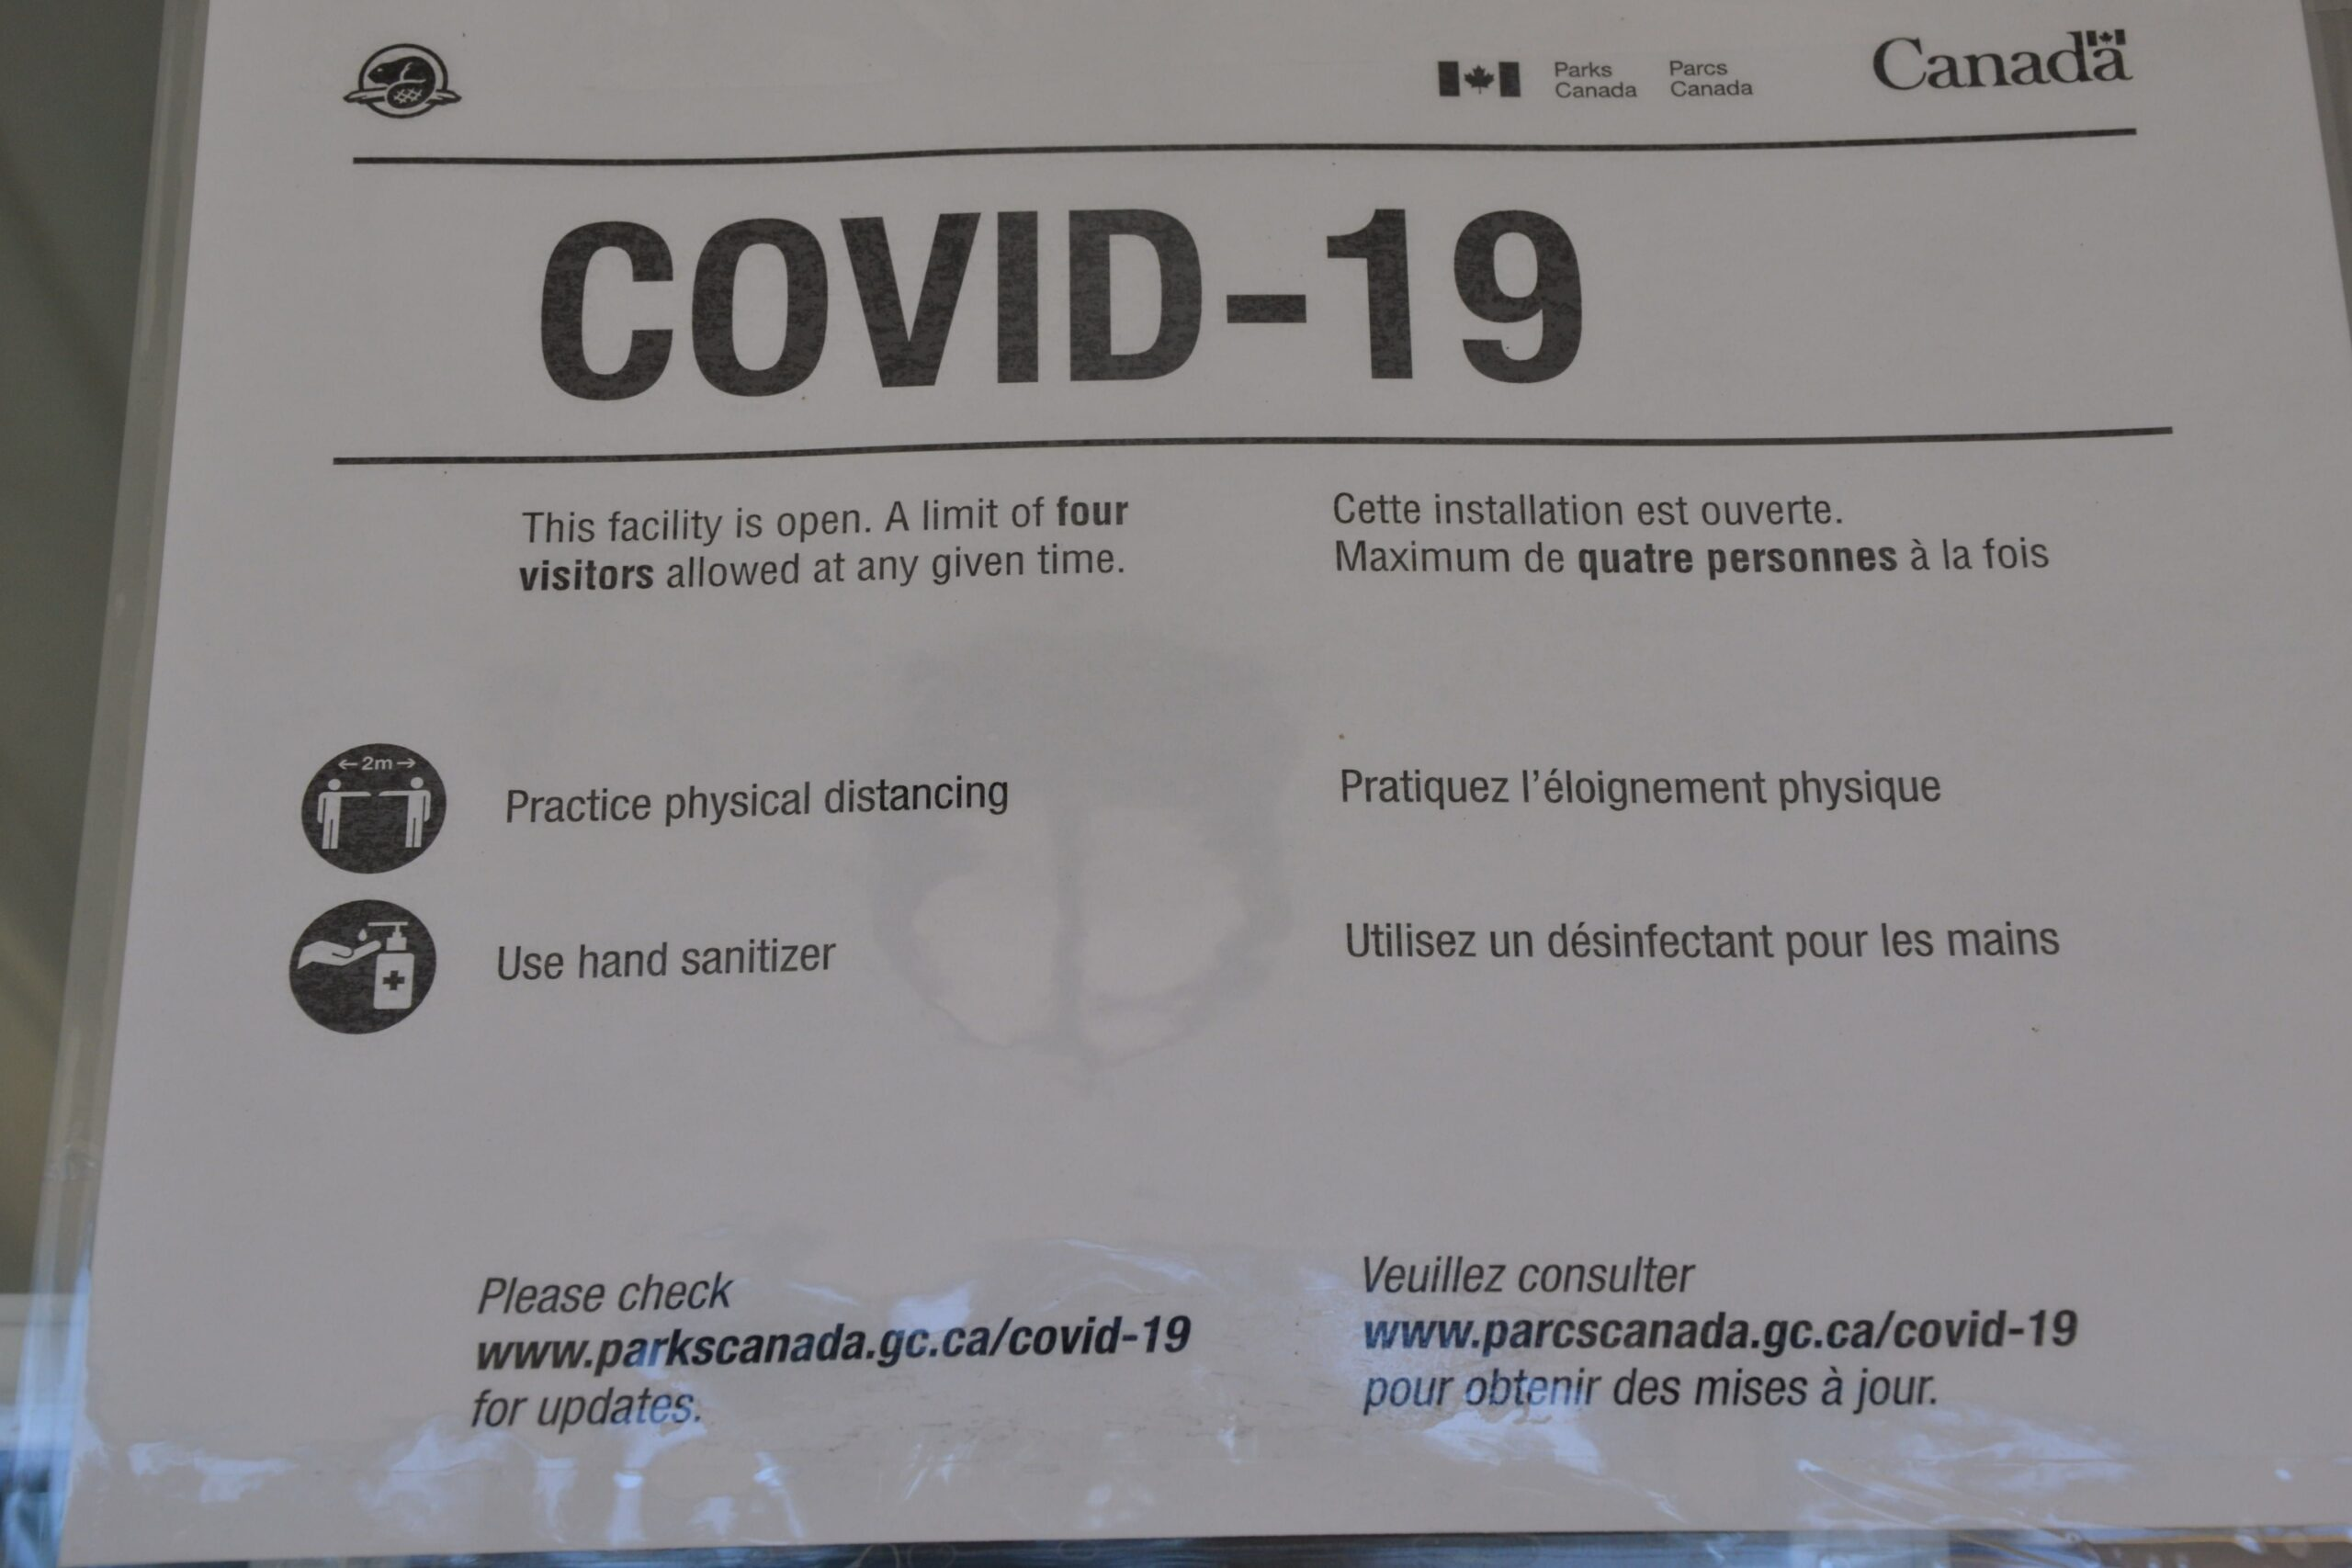 COVID-19 sign at PEI National Park